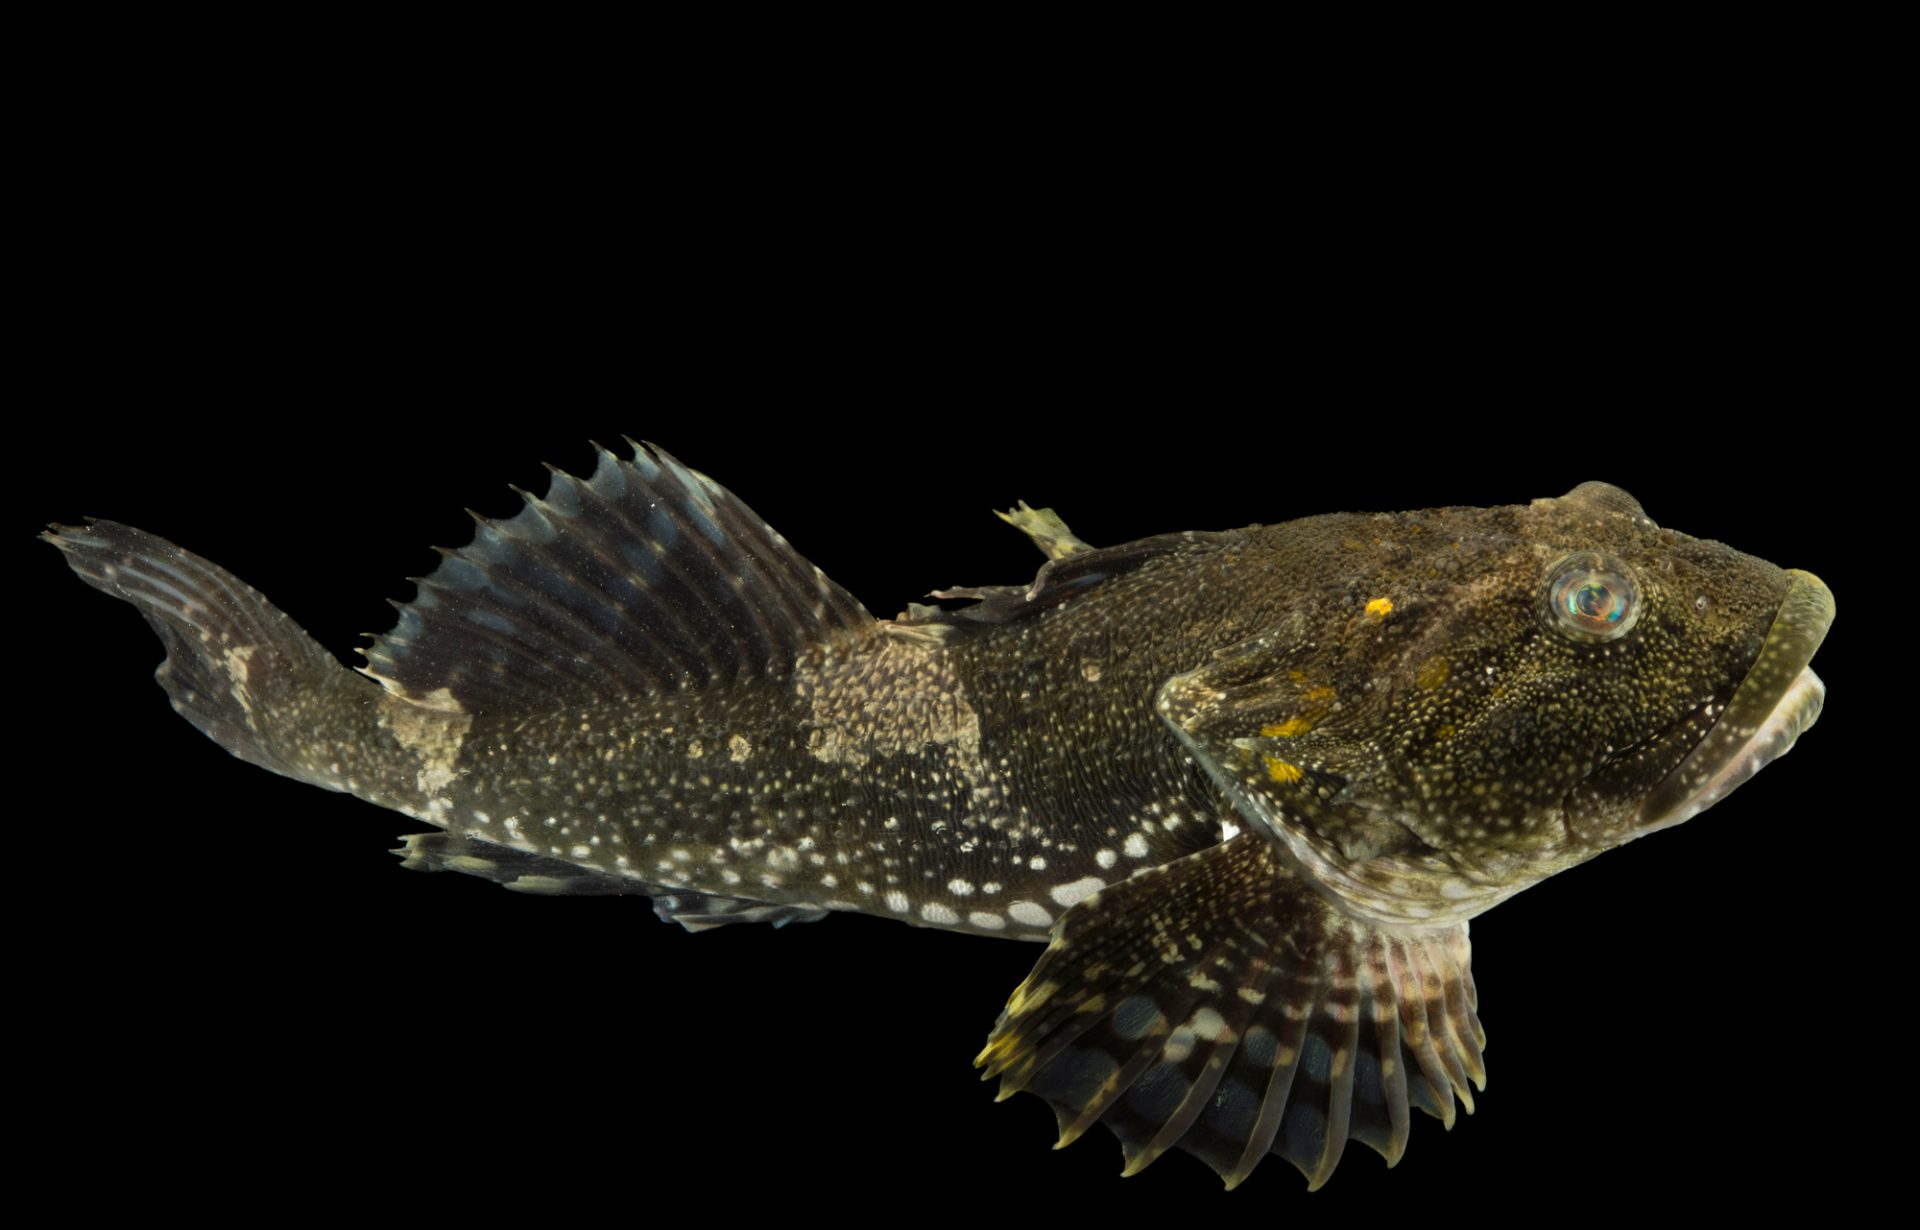 Photo: Great sculpin (Myoxocephalus polyacanthocephalus) at the Alaska SeaLife Center in Seward, AK.